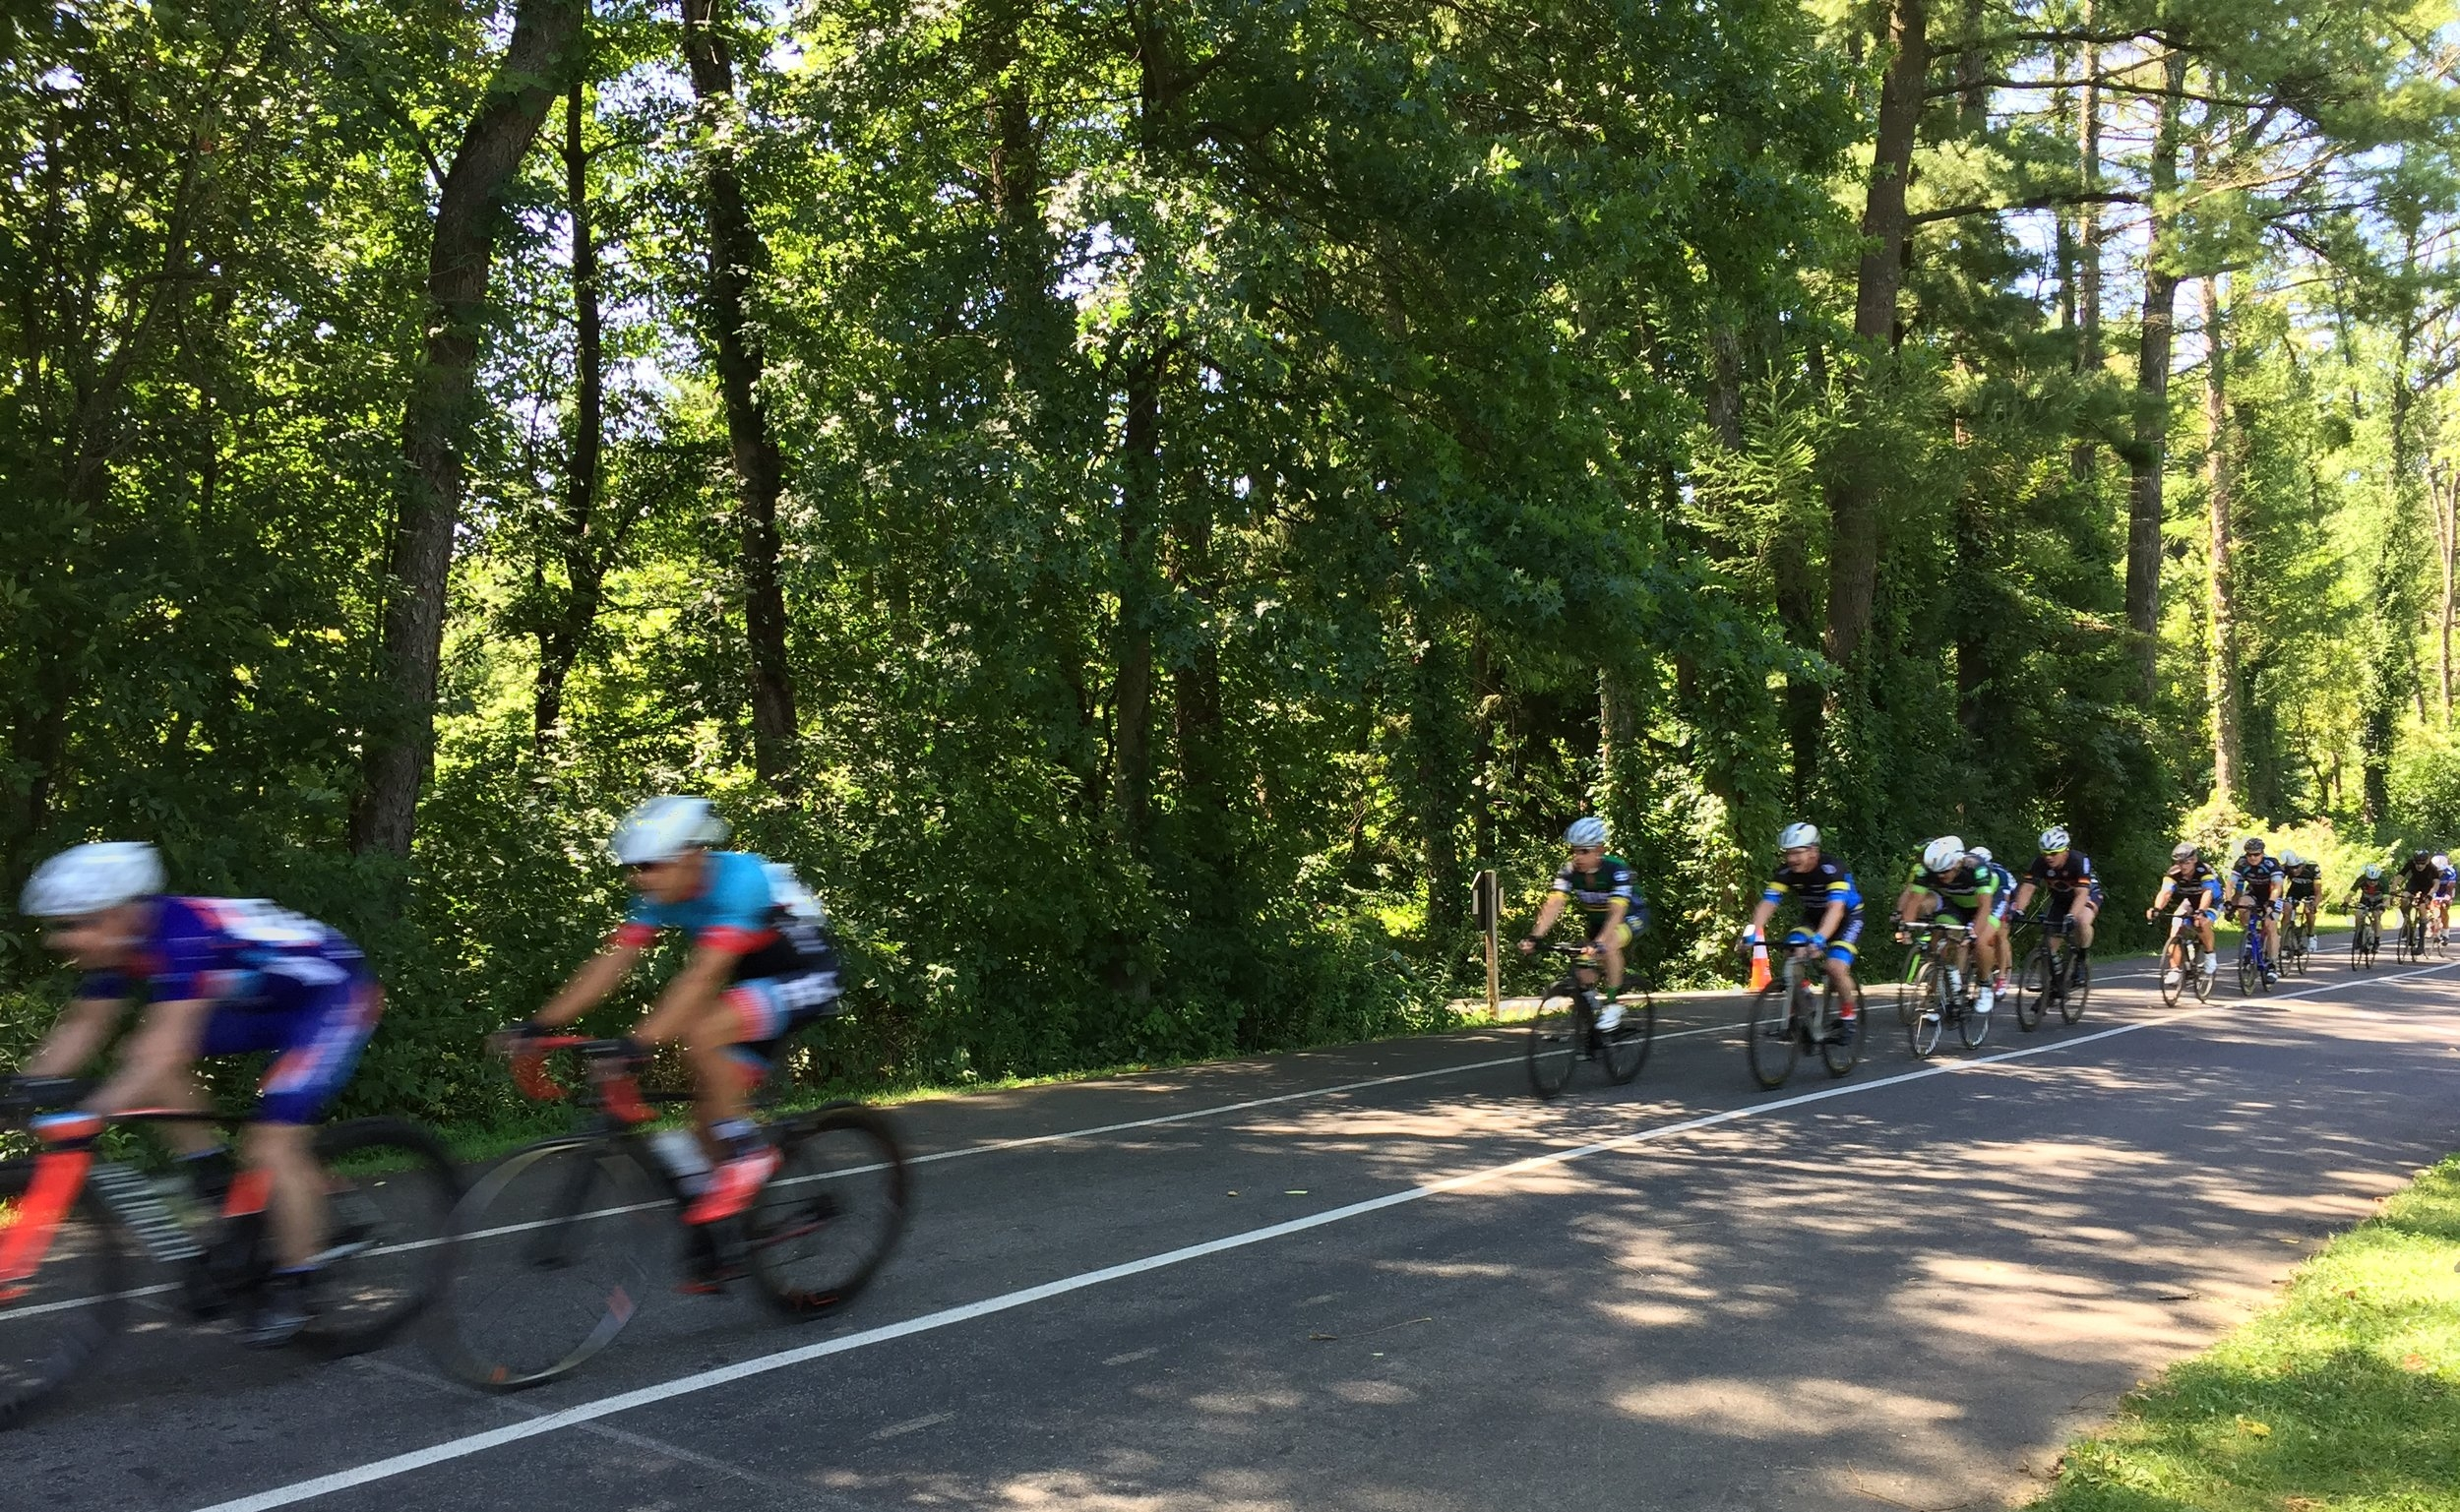 Riders coming by the start/finish line at Rodale Park.